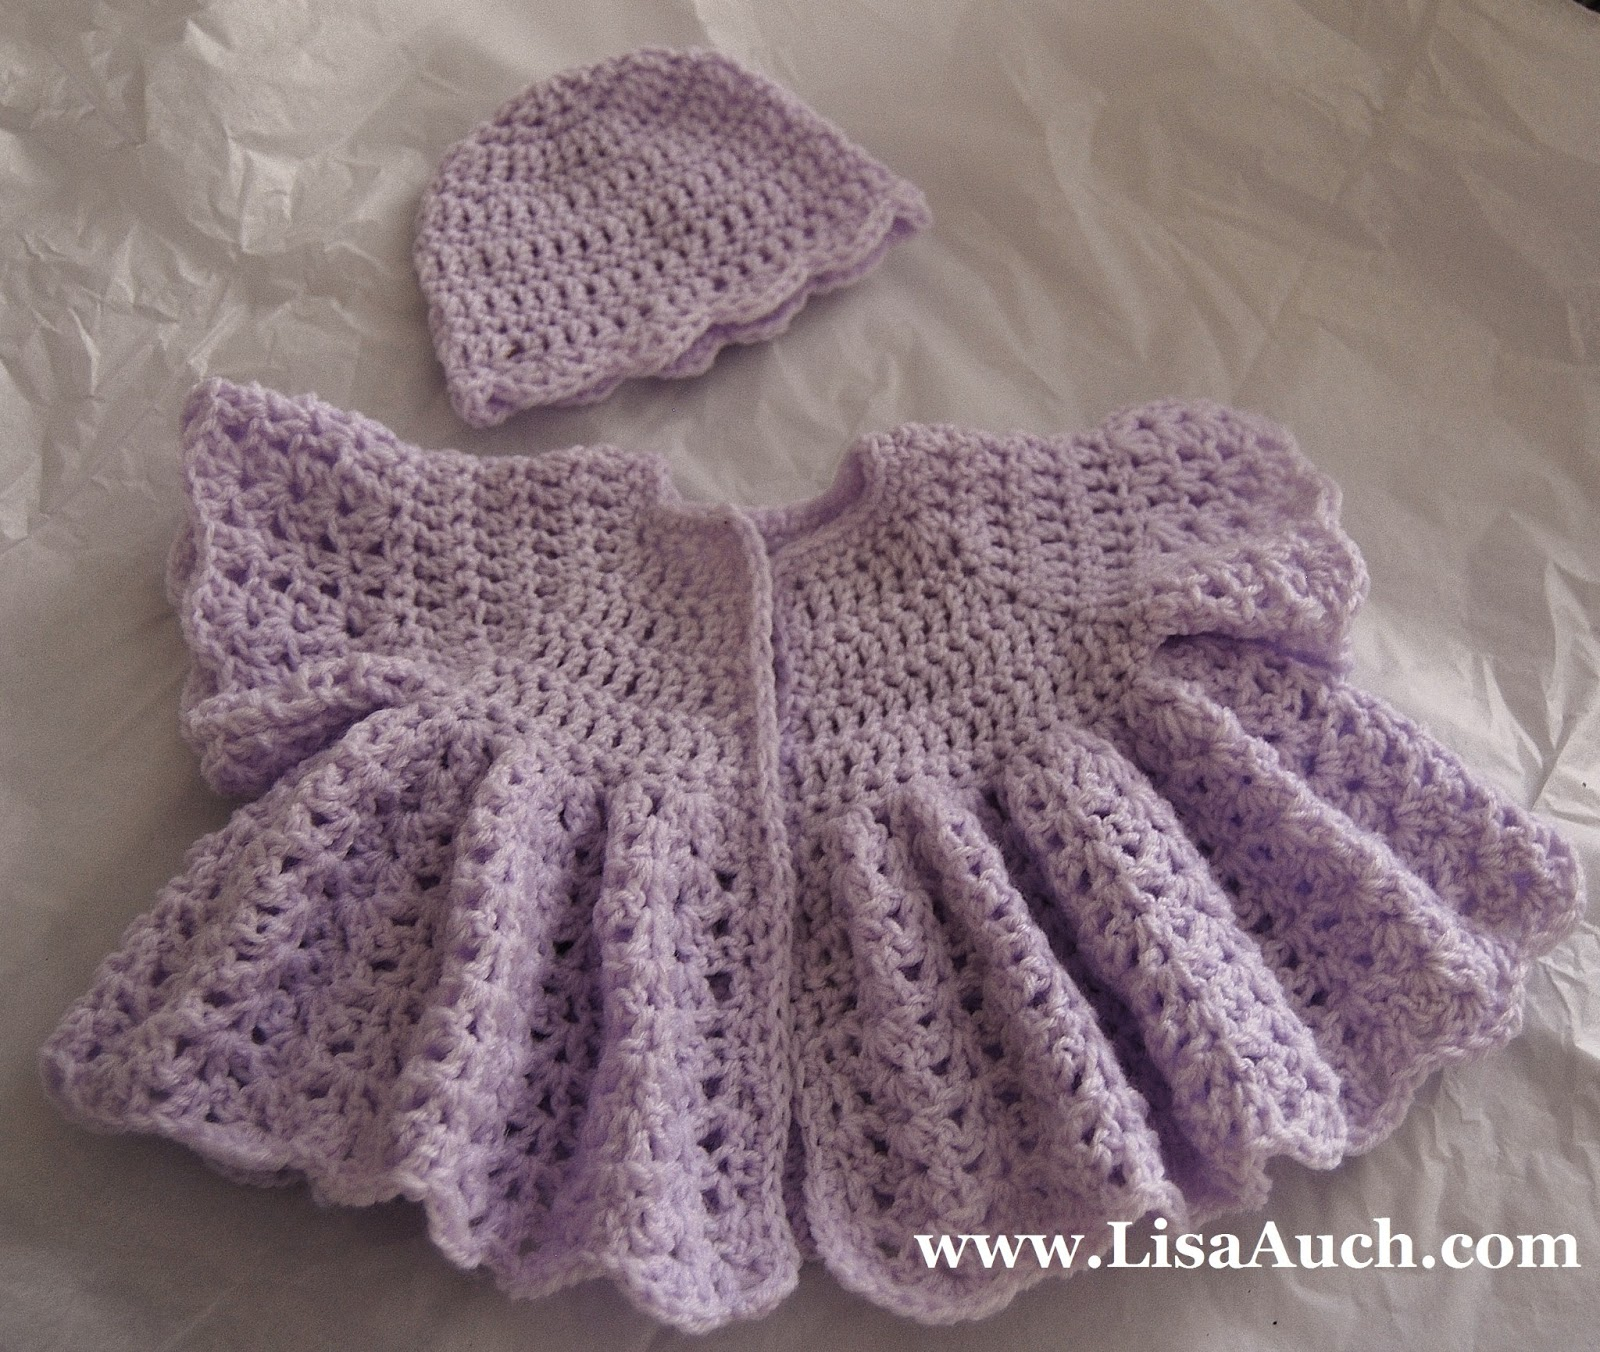 Free Crochet Toddler Sweater Patterns images